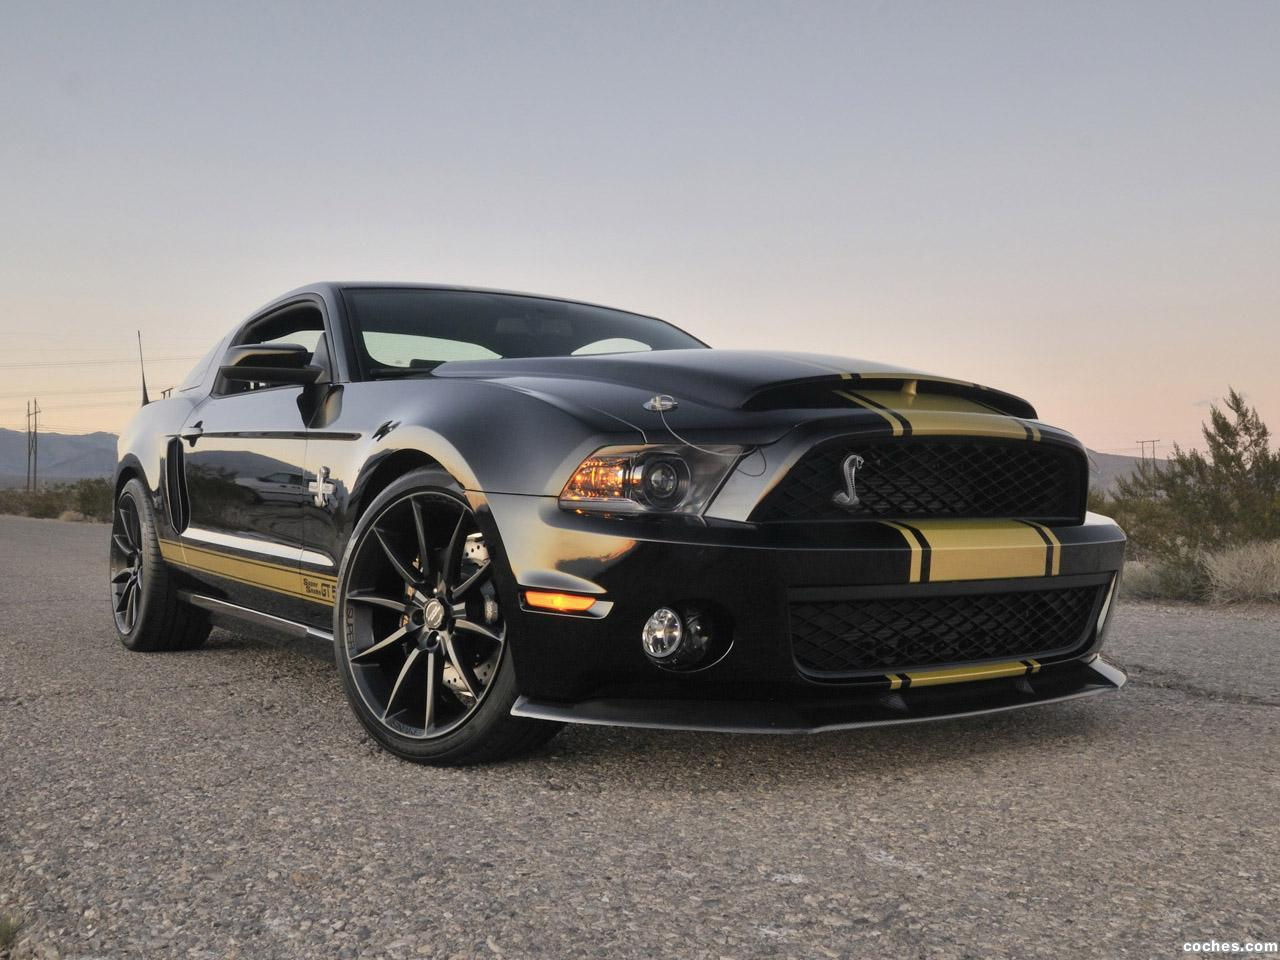 Foto 0 de Ford Shelby Mustang GT500 Super Snake 50th Anniversary 2012